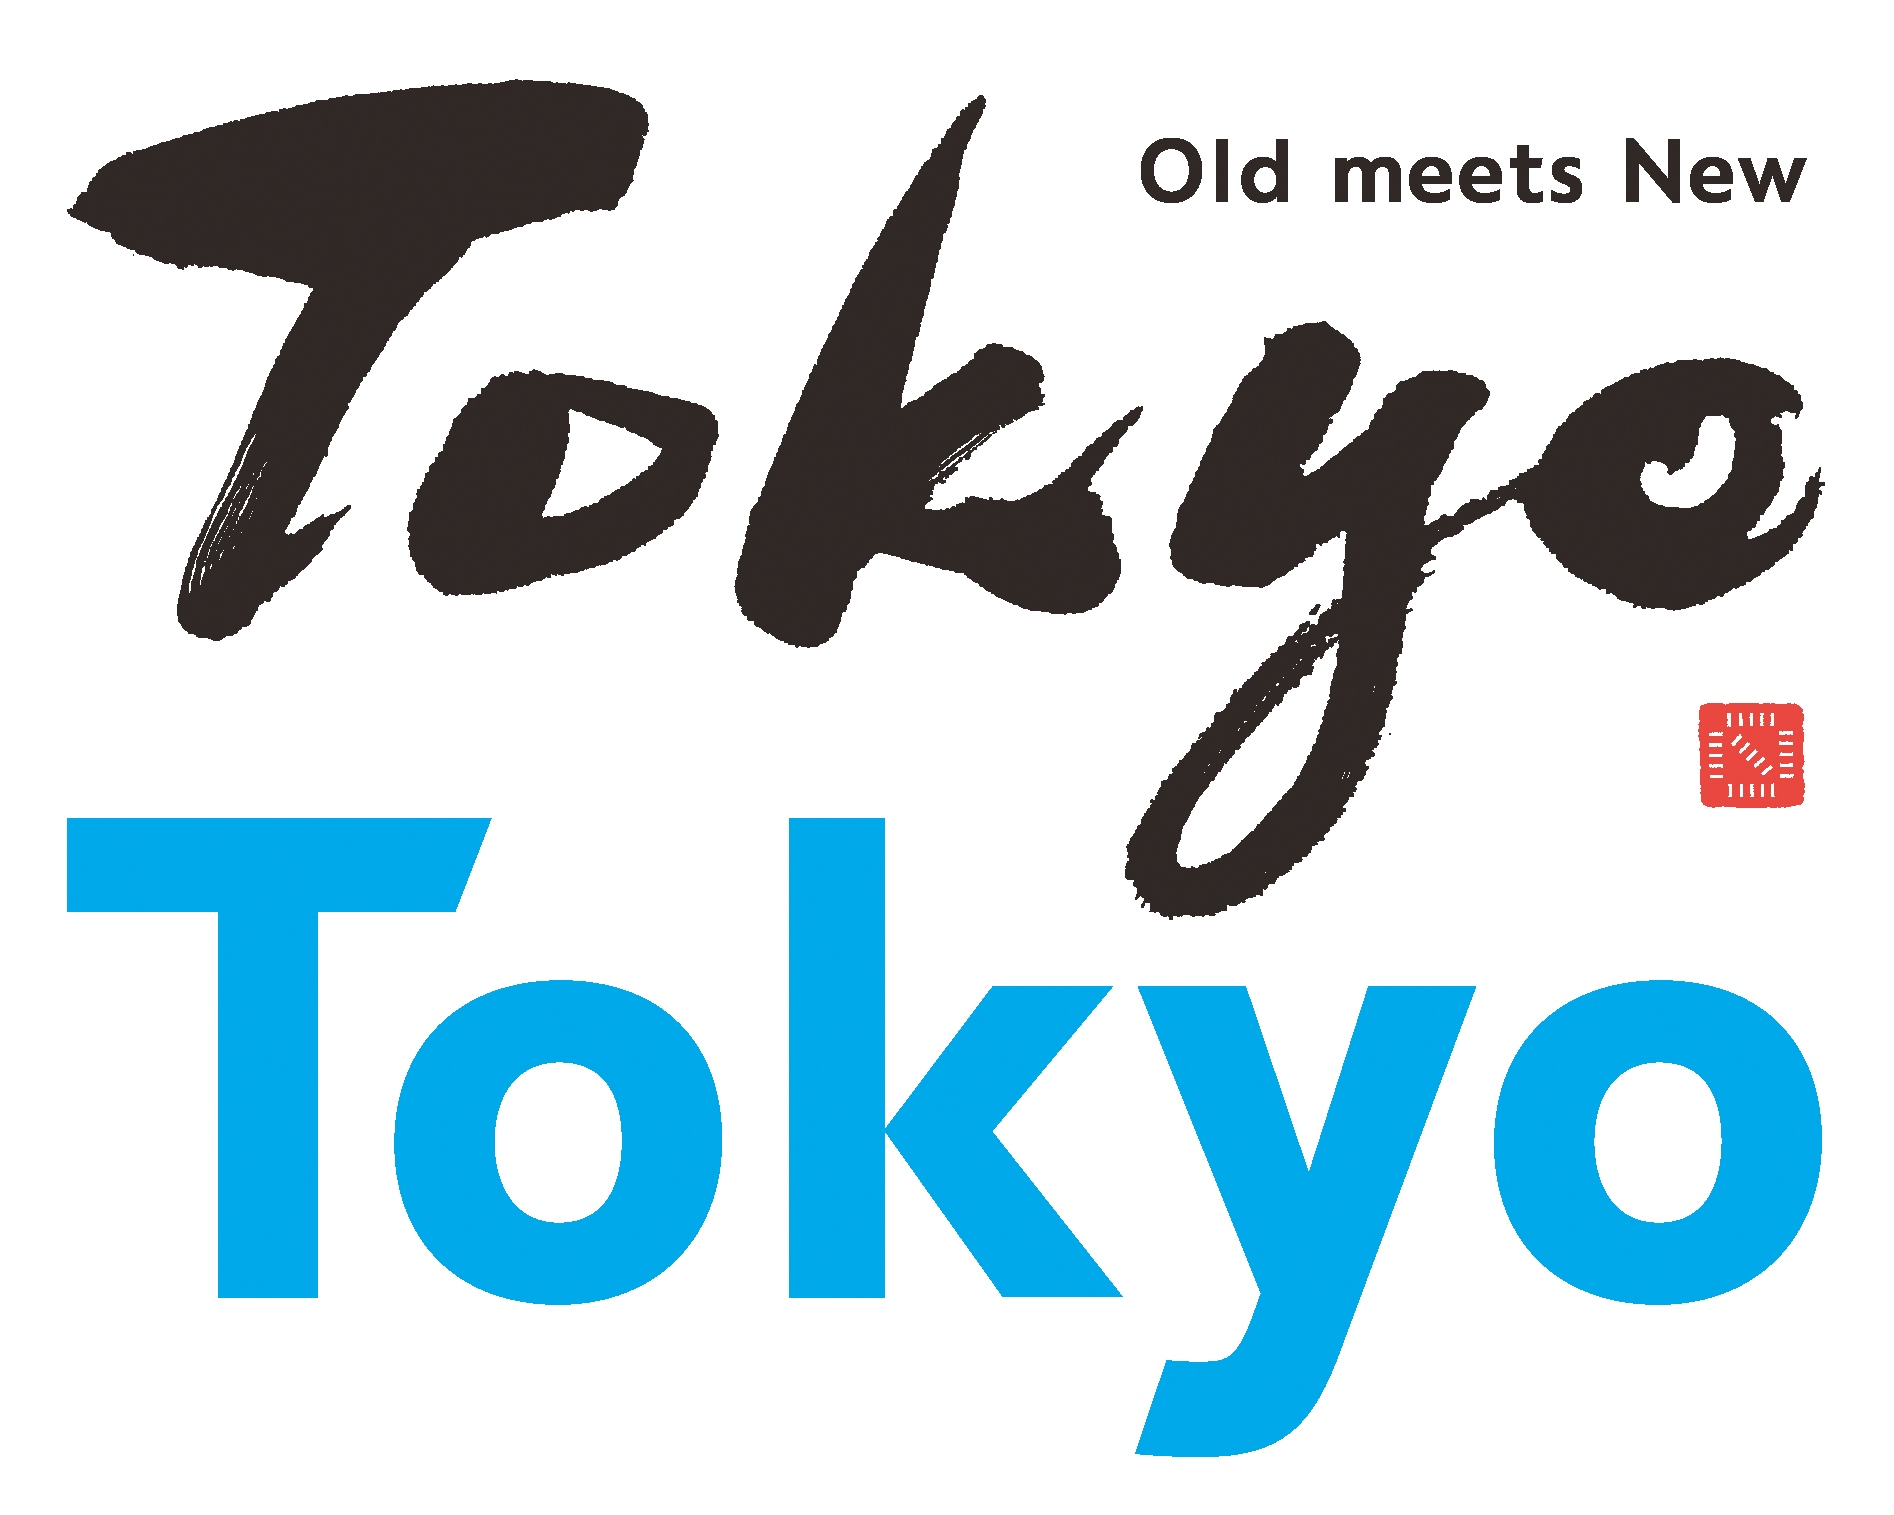 79th International Photographic Salon: Tokyo Tokyo Old meets New